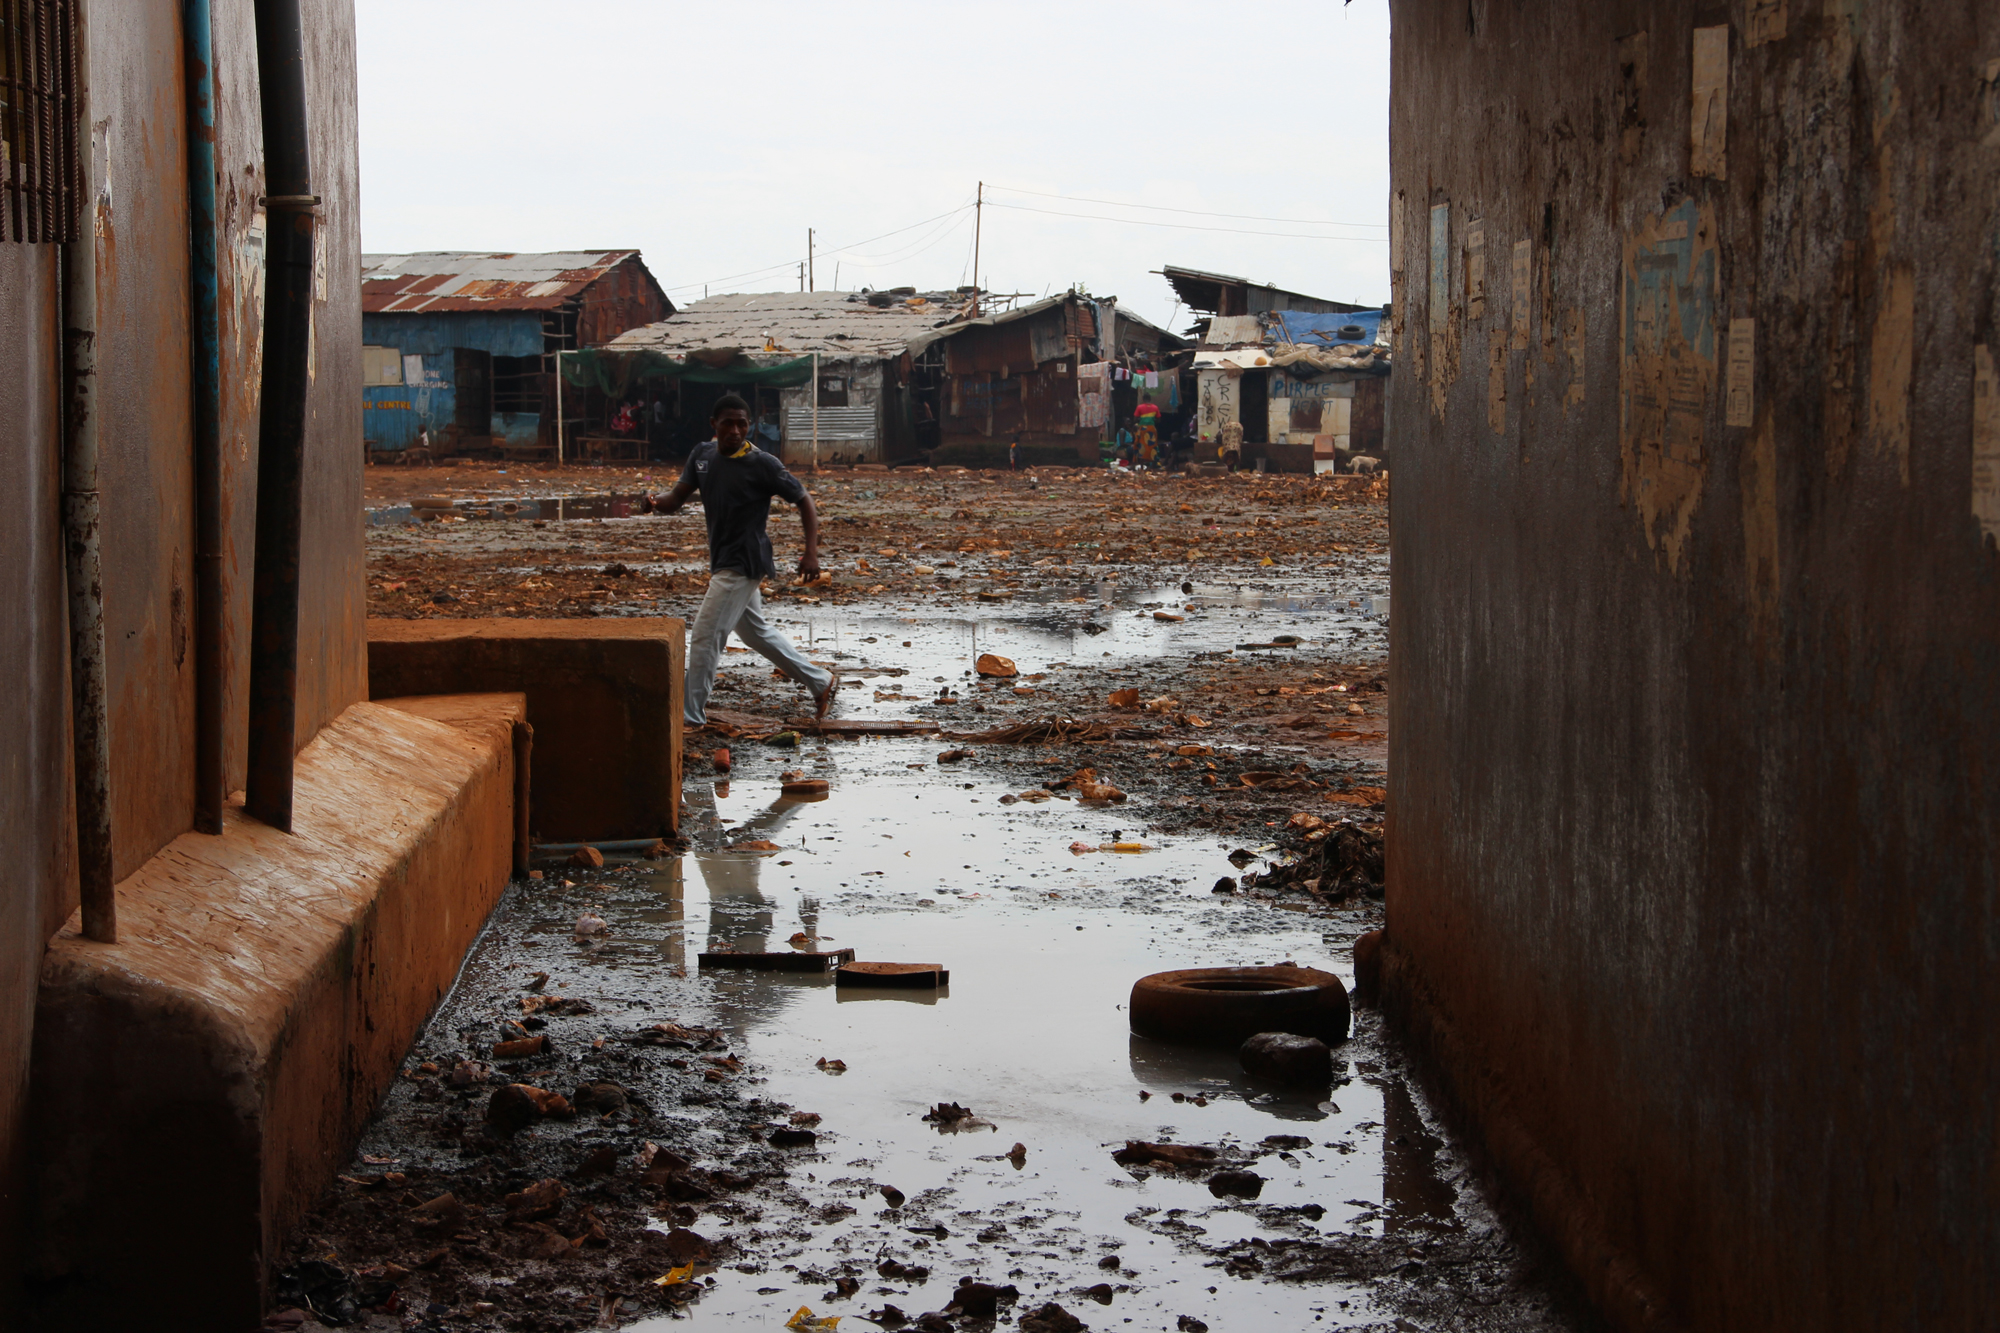 Congested Freetown slums with inadequate safe water, sanitation and hygiene were the worst affected